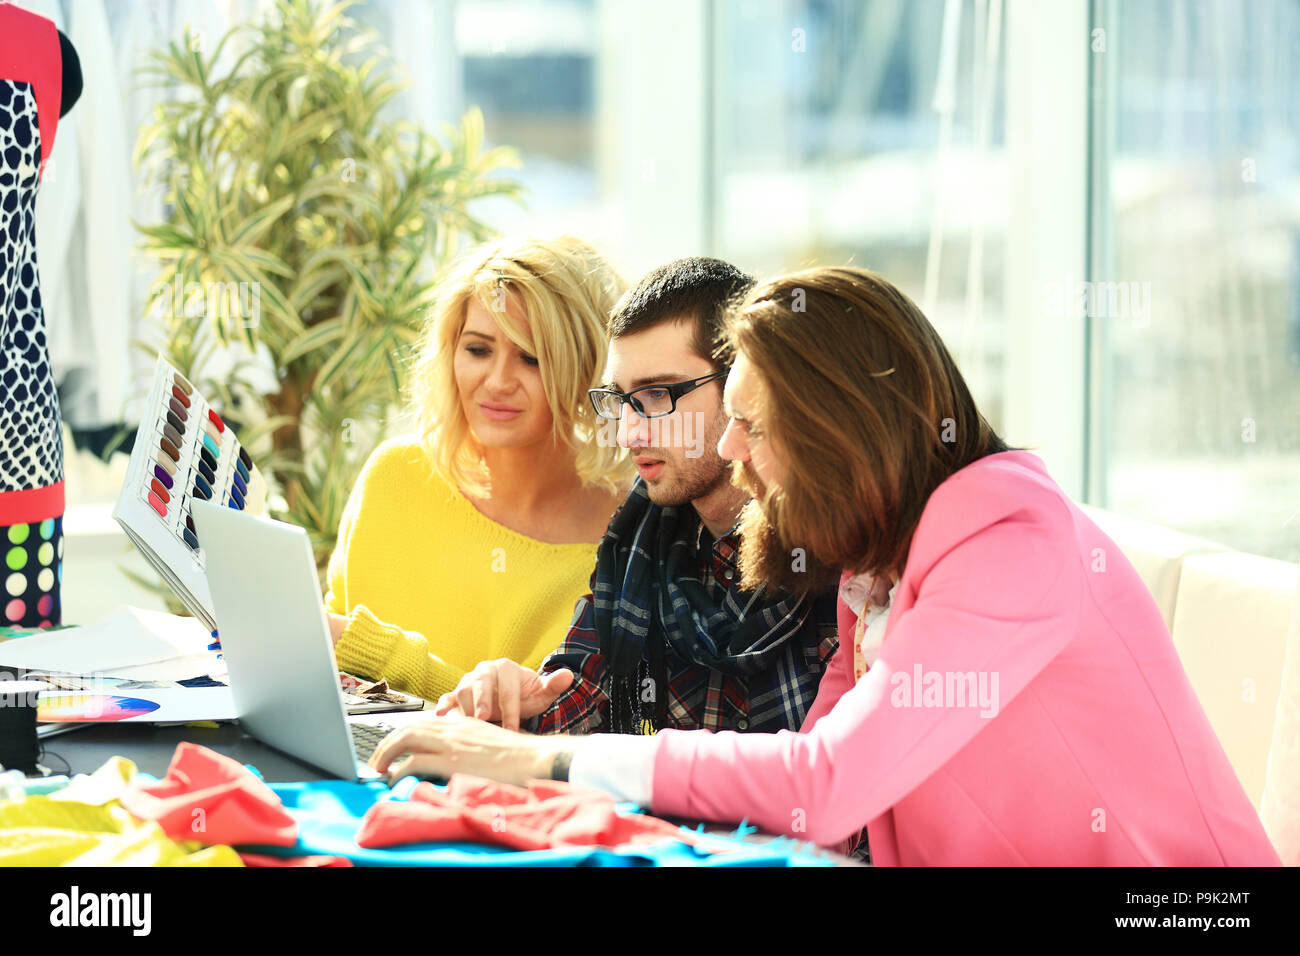 designer group works on a laptop in a creative office - Stock Image